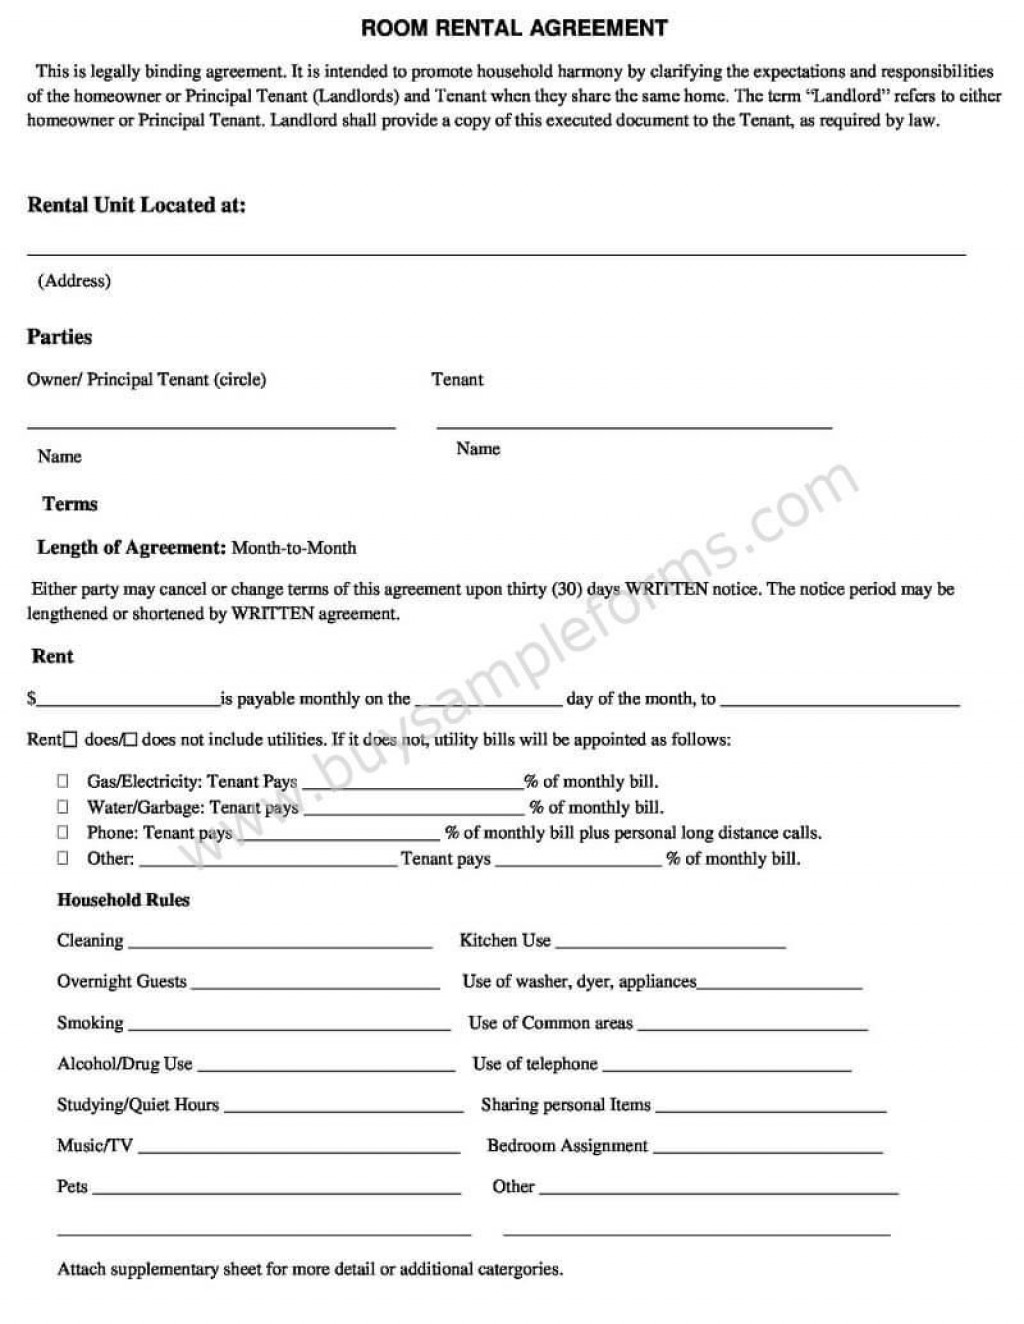 008 Incredible Template For Rental Agreement Example  Lease Sample House CarLarge